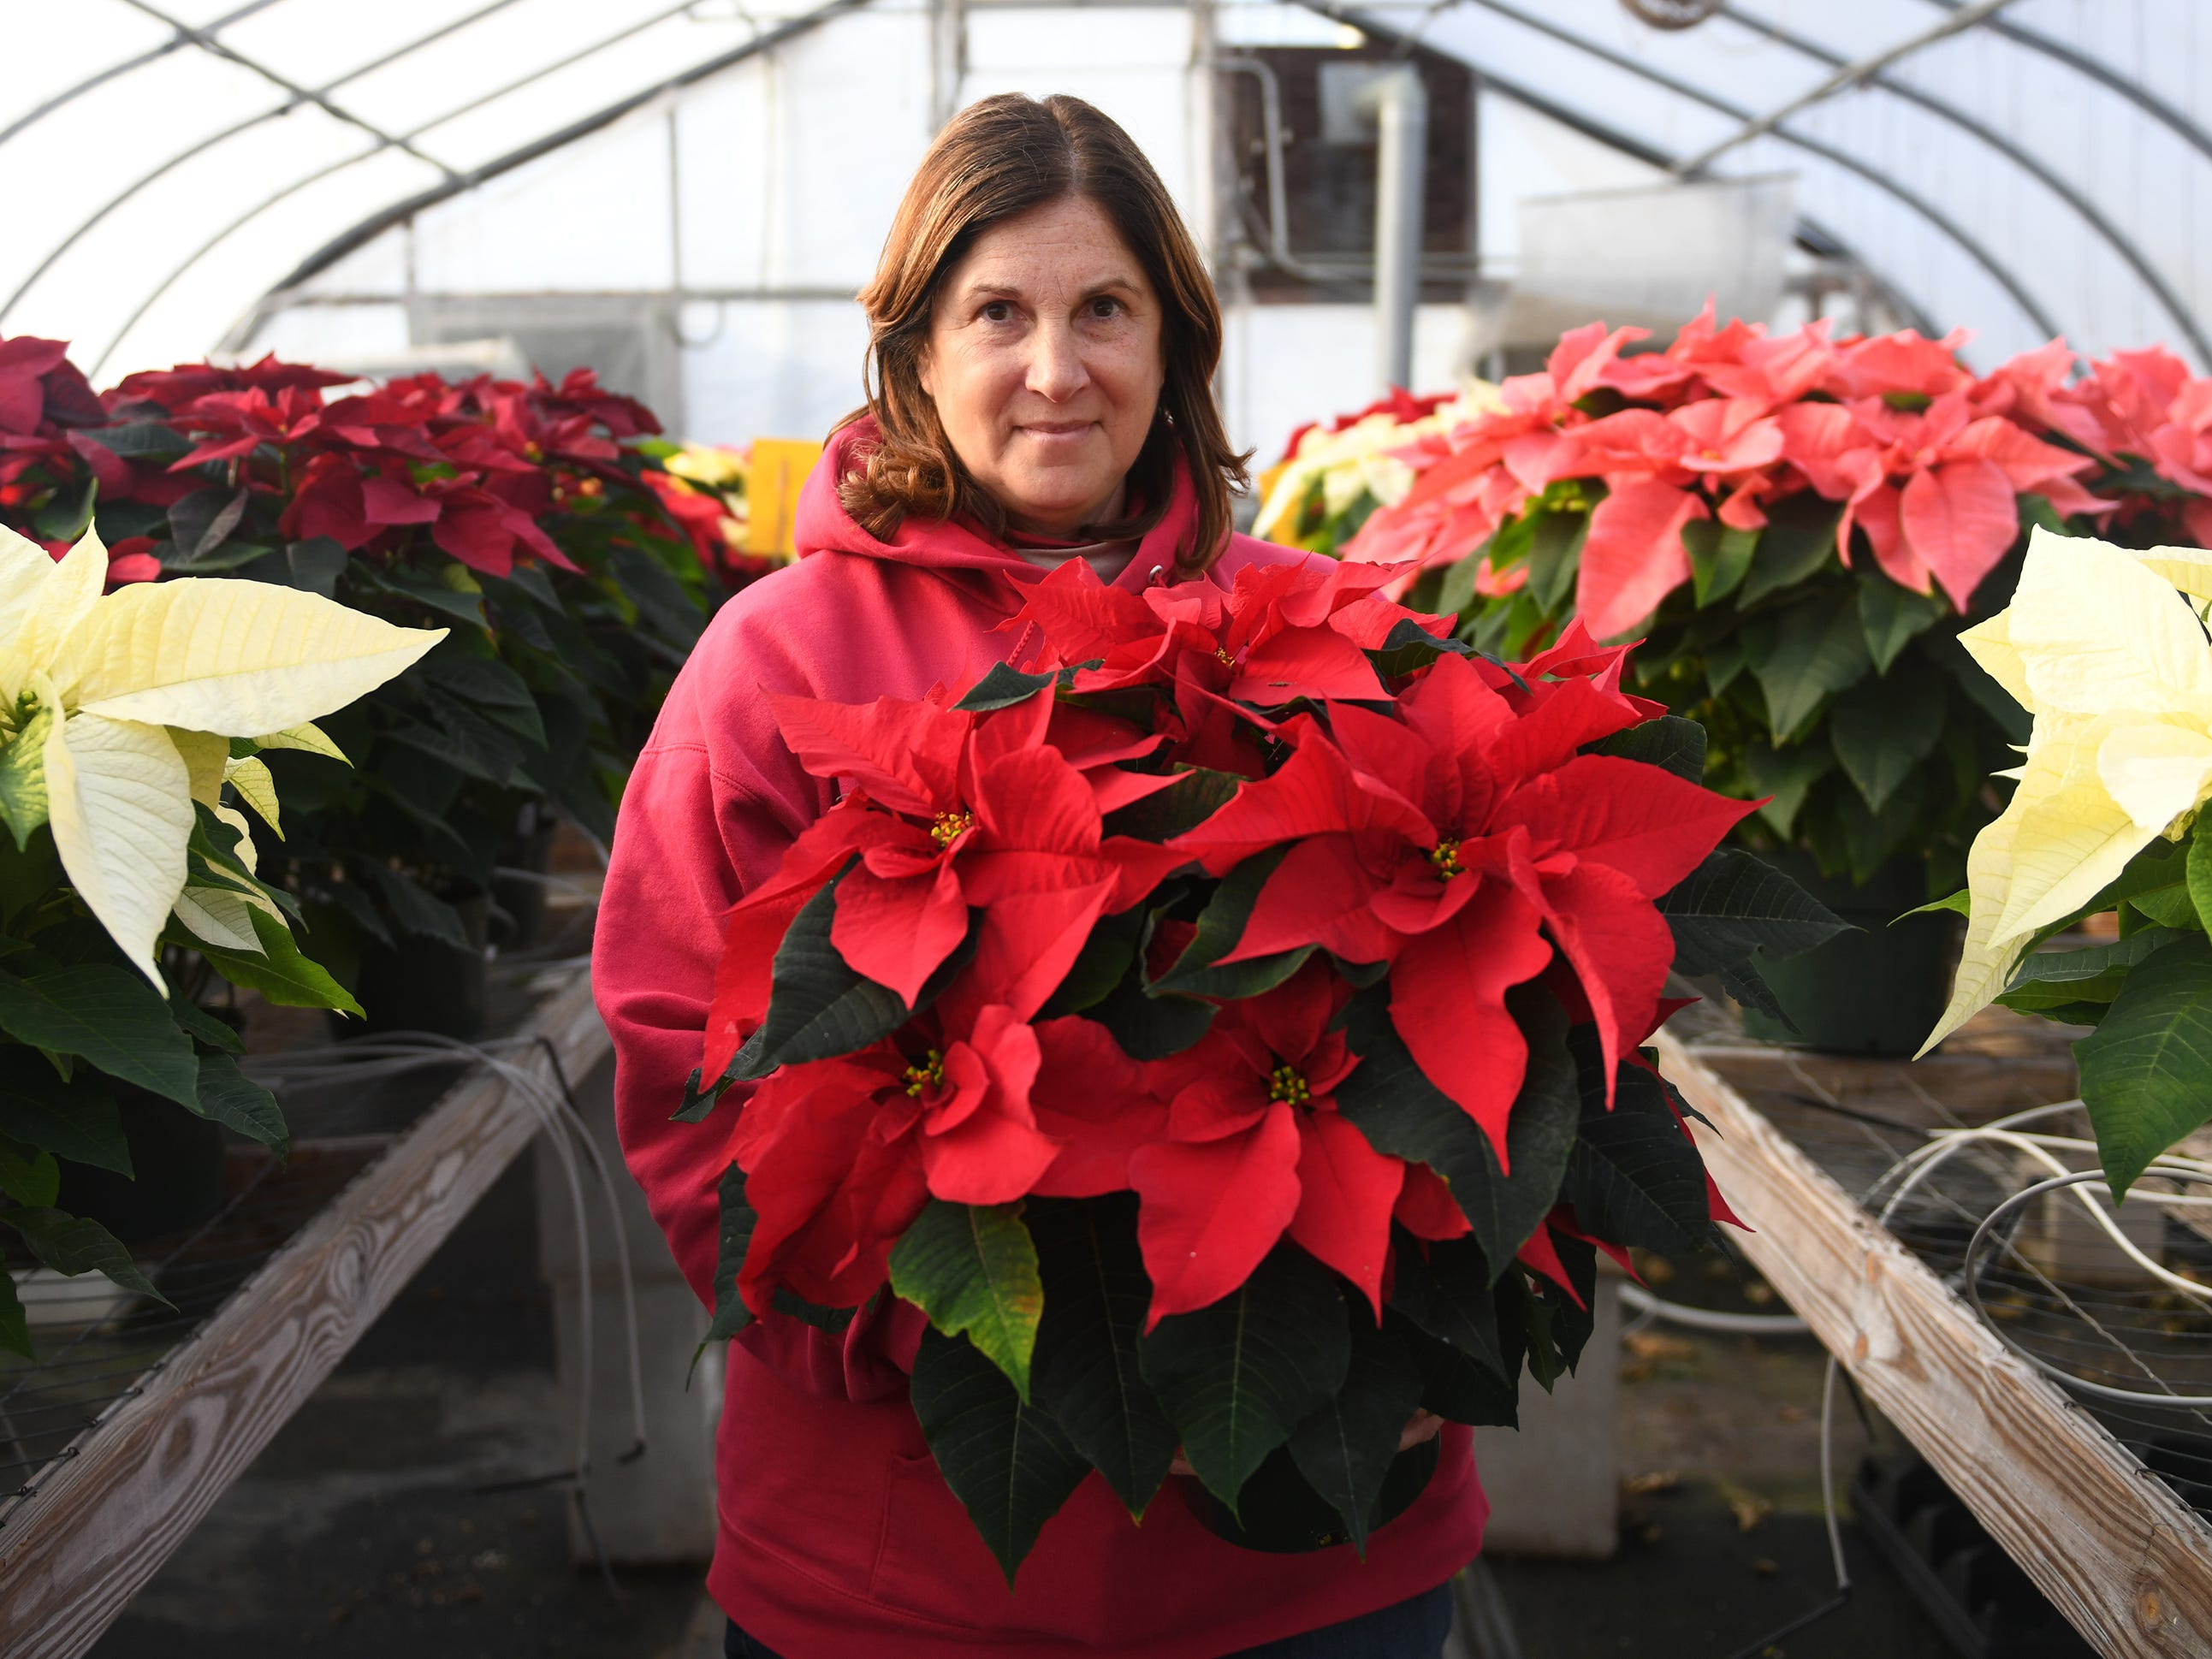 Patty Huffman holds a poinsettia plant that her farm produces. Huffman Farms starts to grow poinsettias in July so they are ready for the Christmas season. The plants are available in several different colors including red, white, burgundy, pink and even some speckled varieties at 296 S. Blue Bell Road in Vineland.